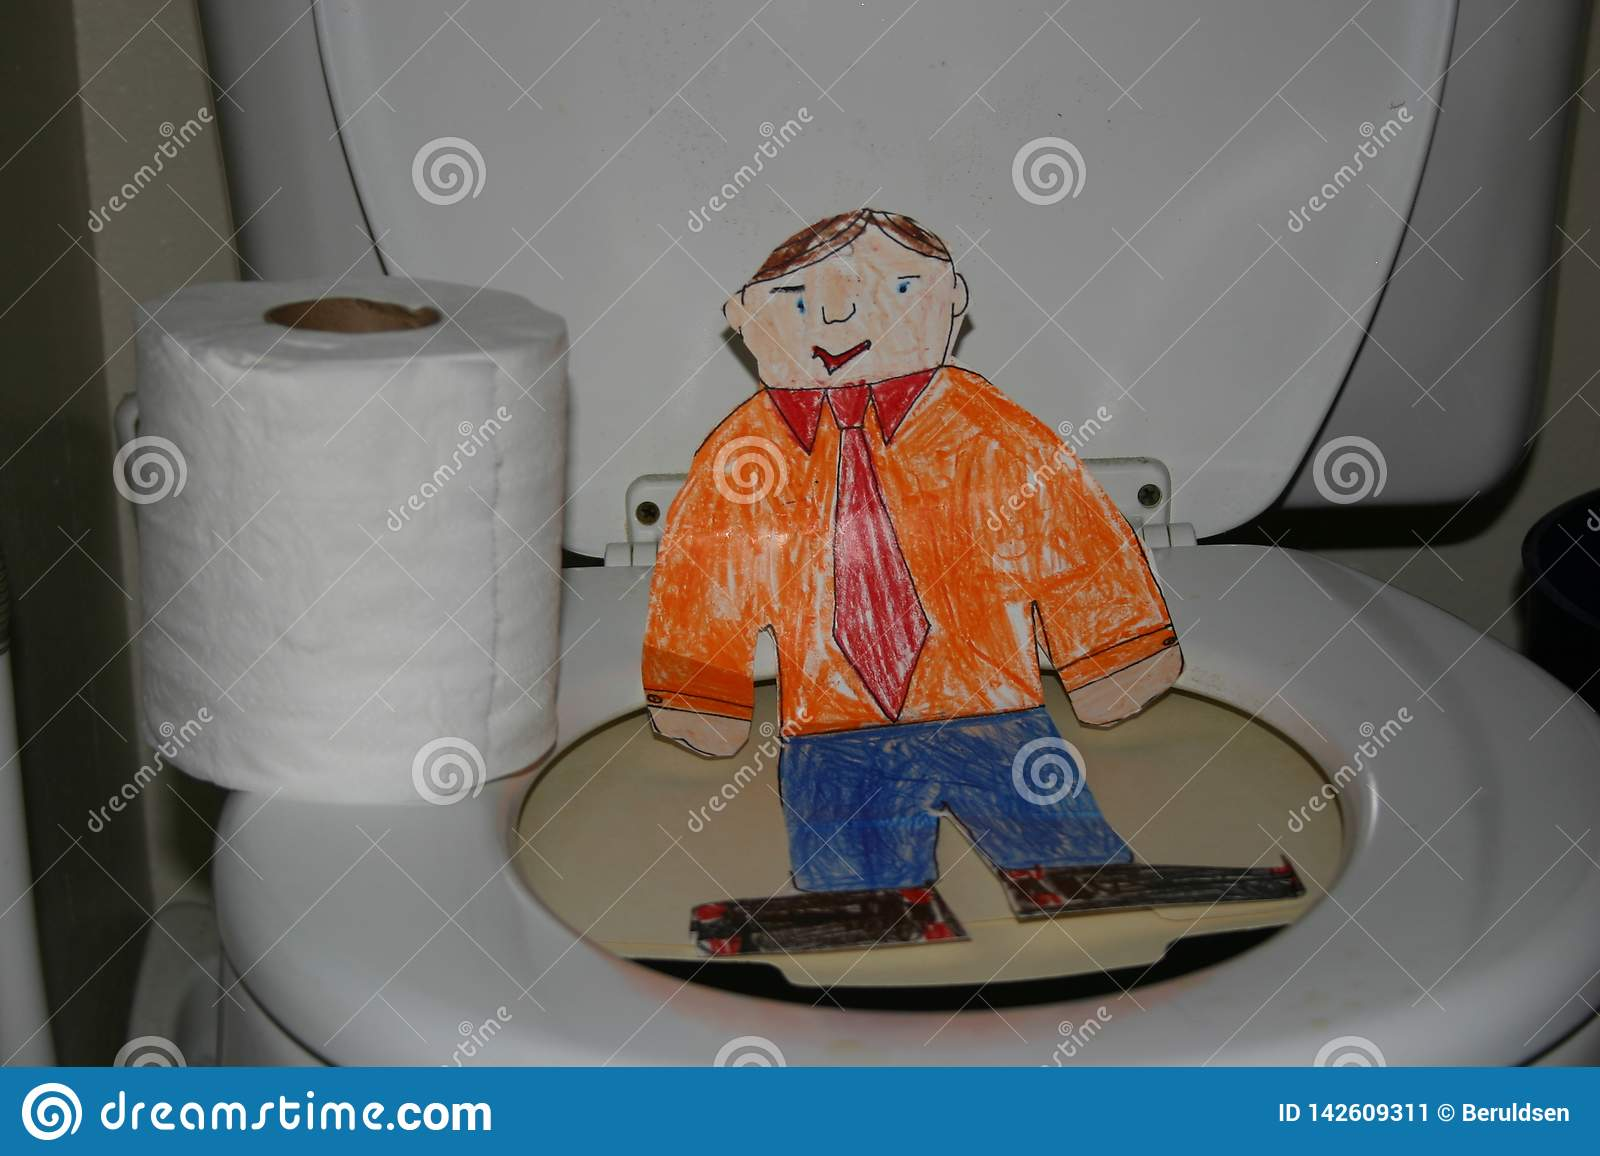 Flat Stanley on the Toilet